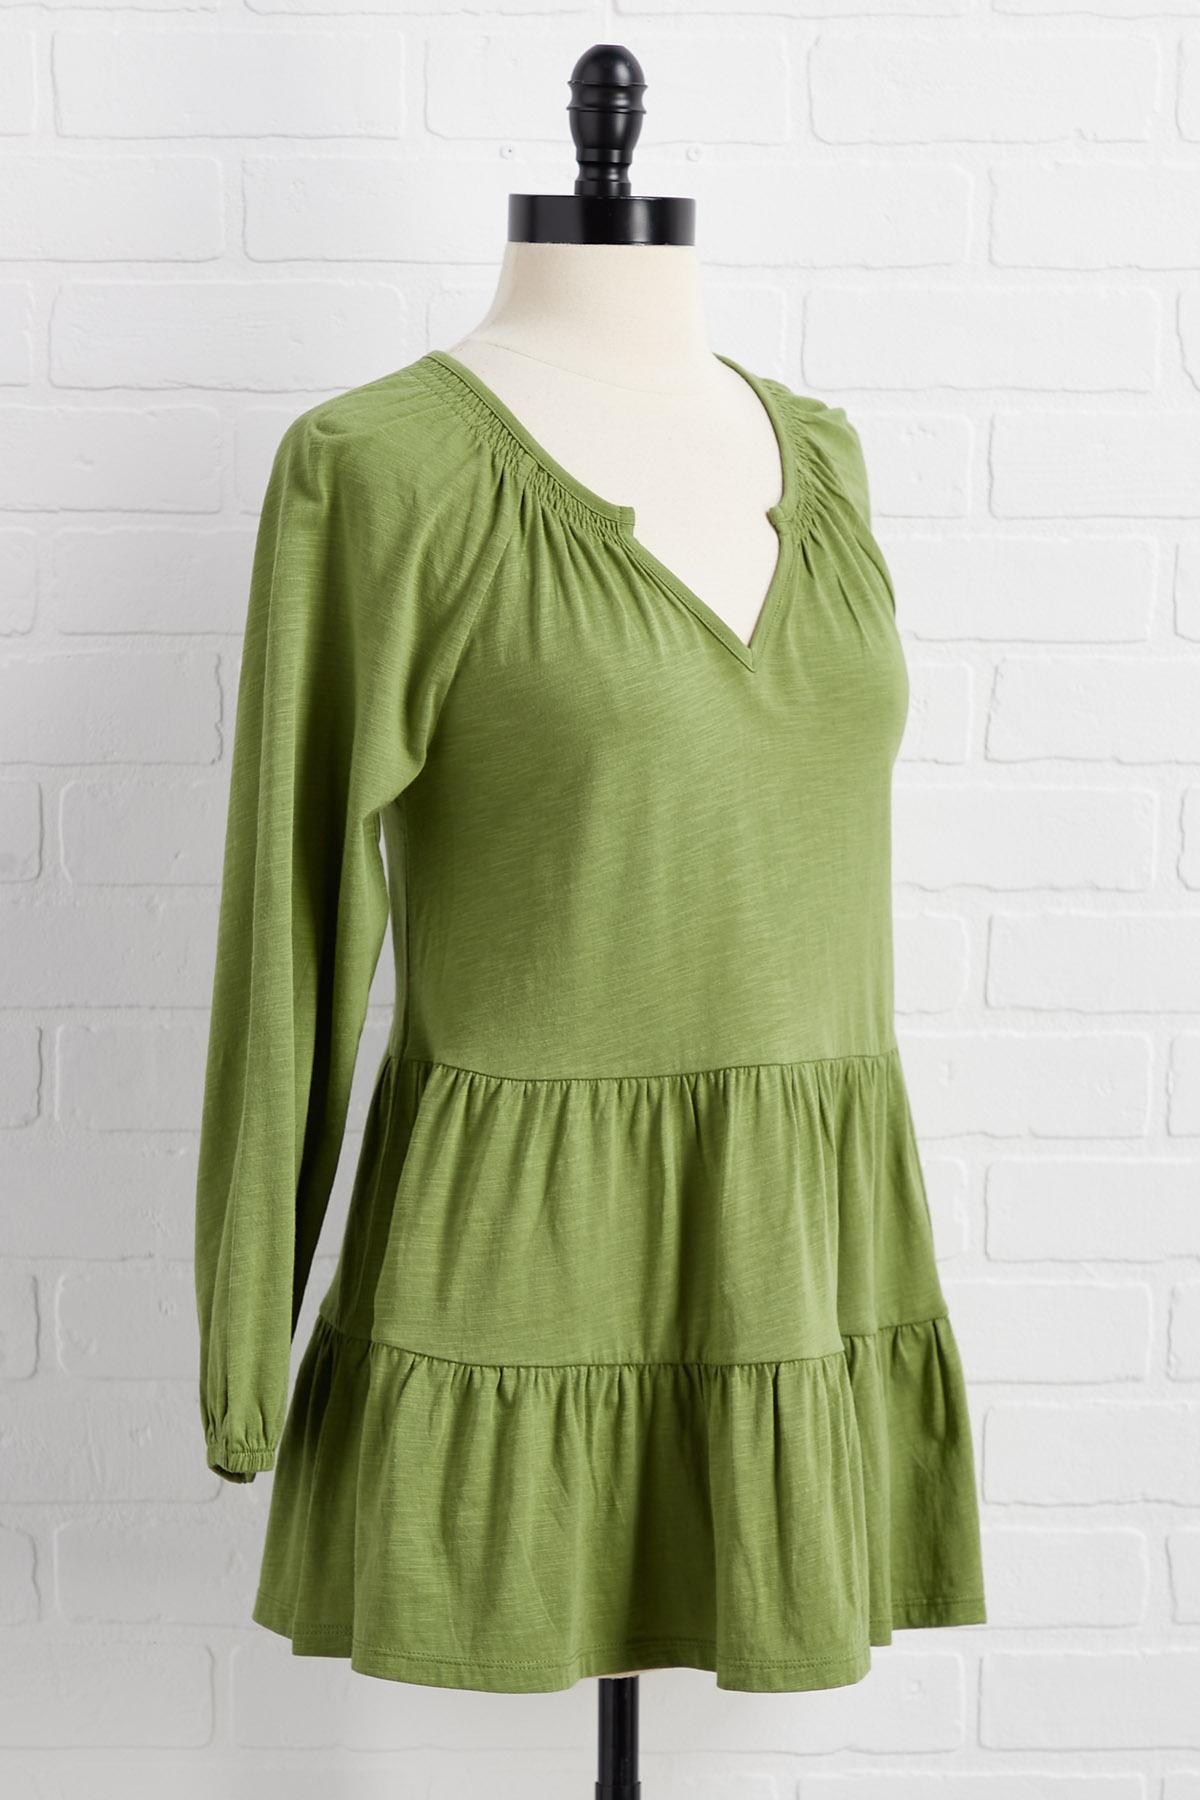 Keen On Green Top